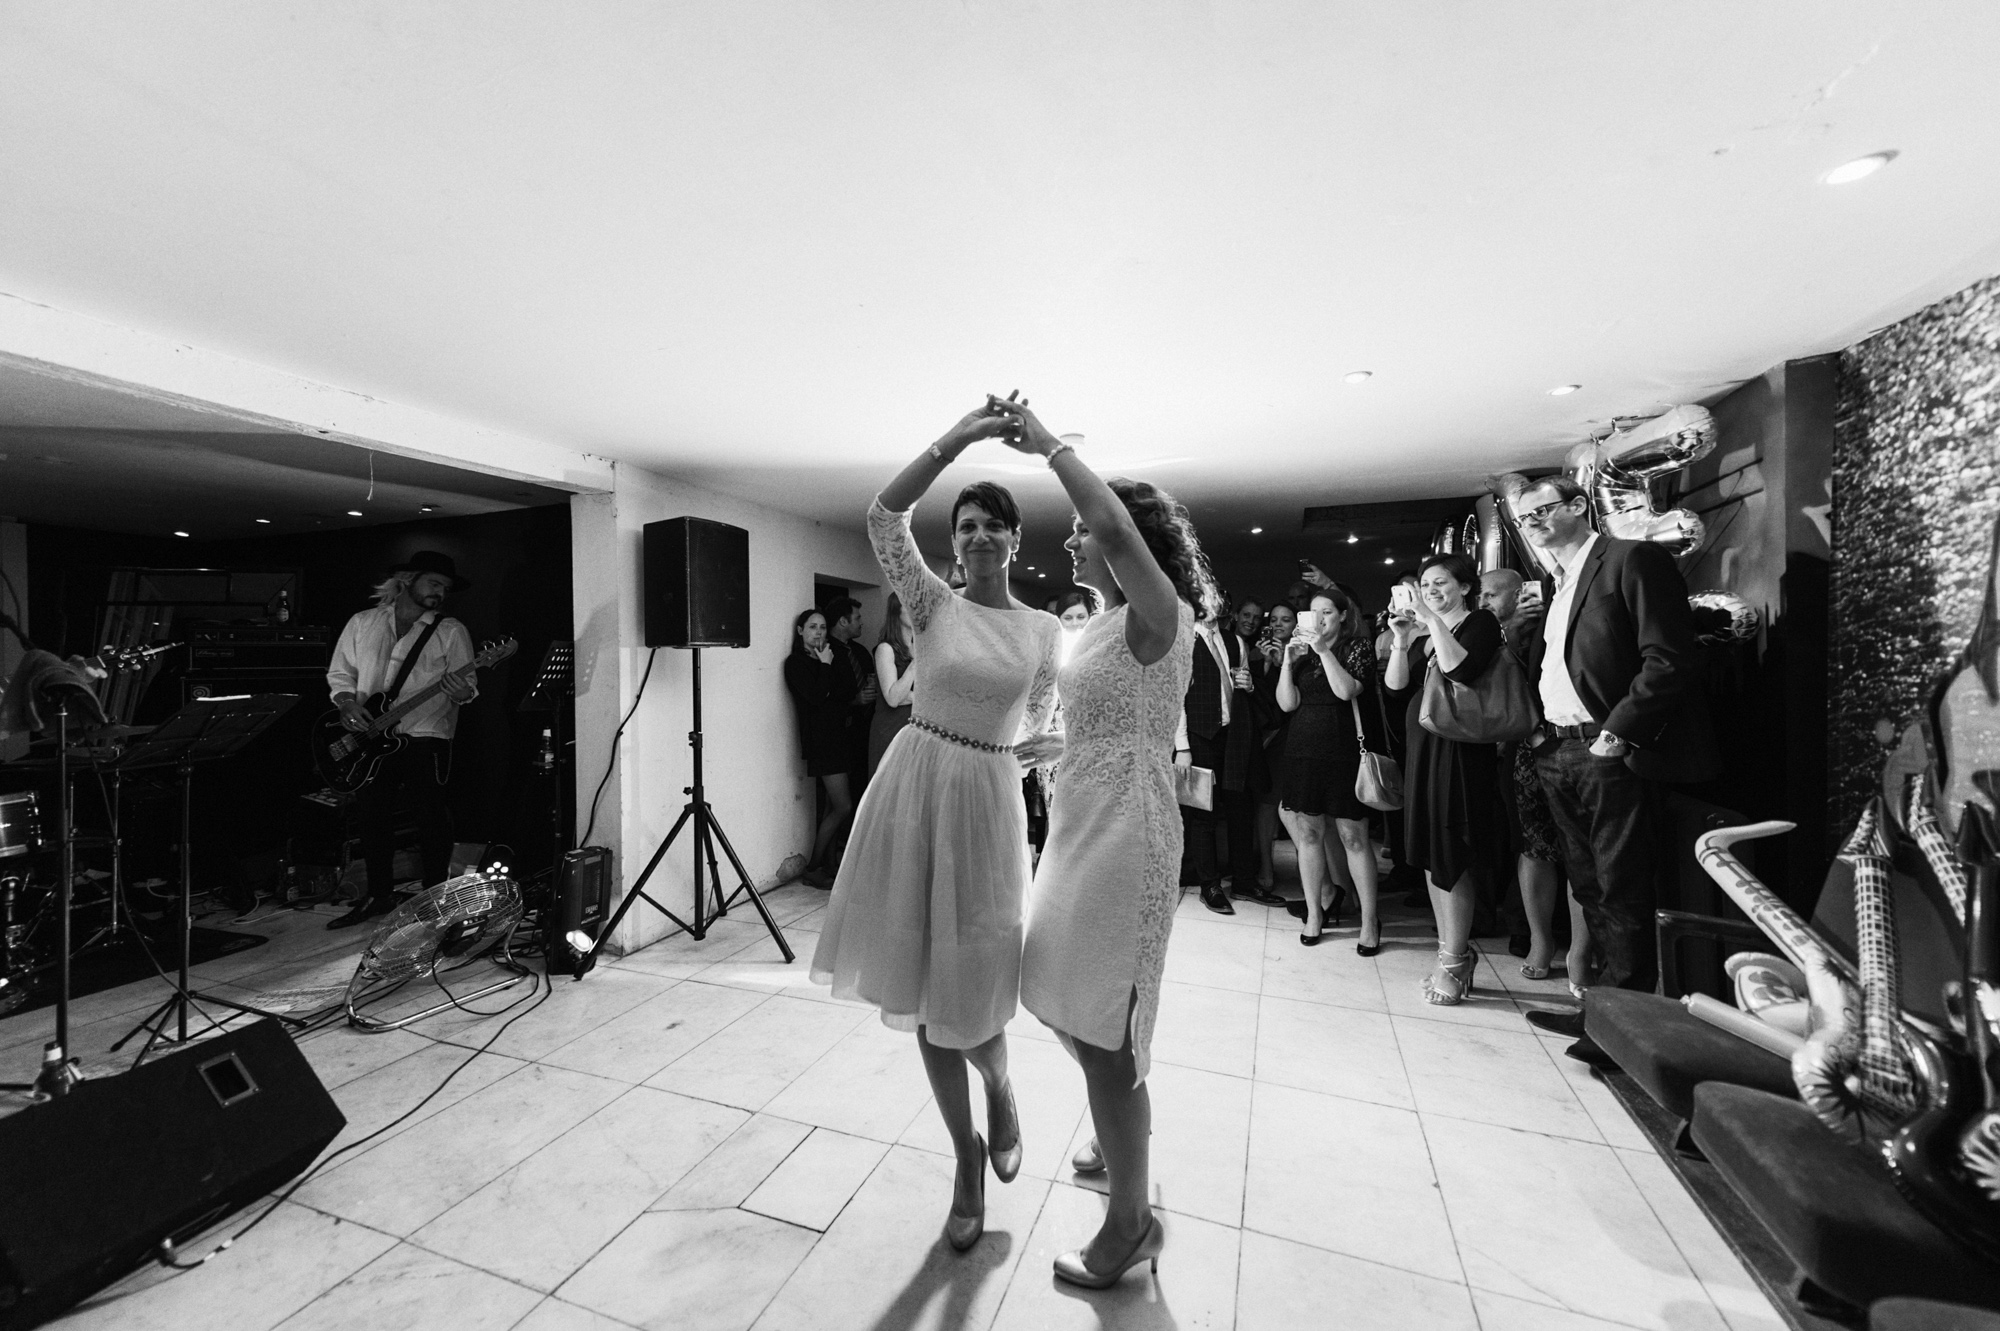 Lesbian brides dancing - quirky creative gay friendly wedding photographer The Roost Dalston London wedding photographer © Babb Photo